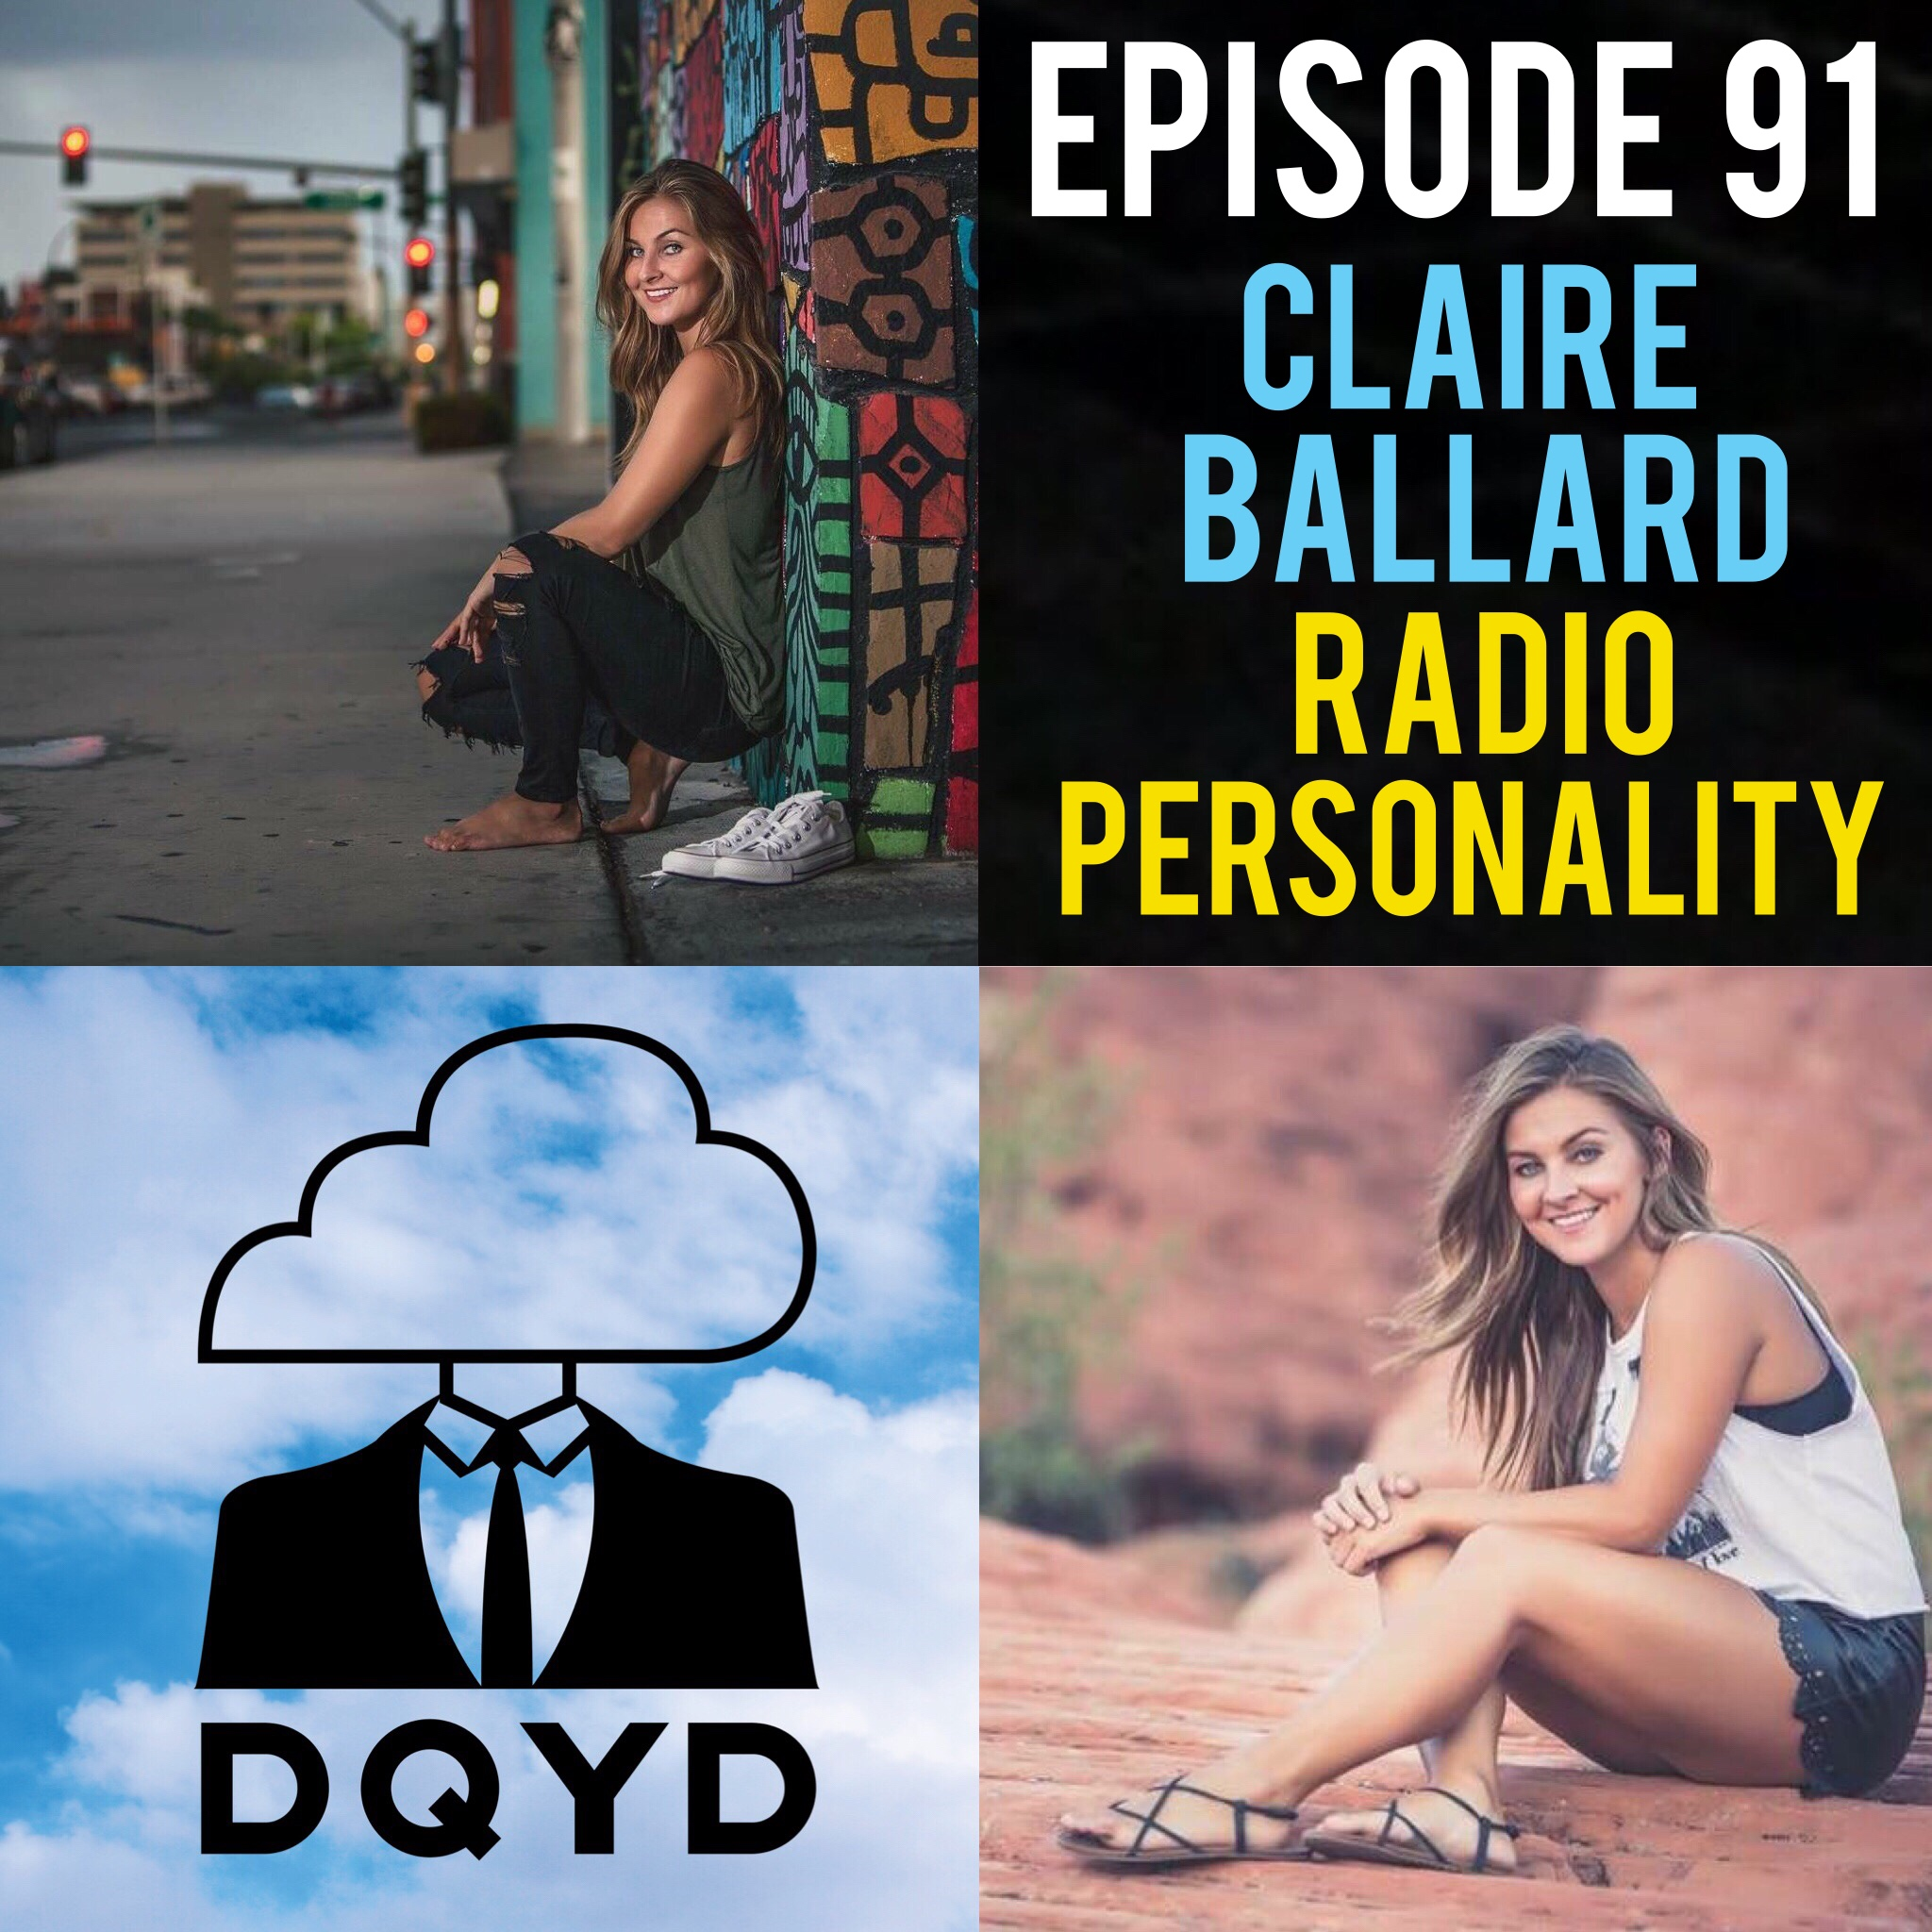 """Episode 91 with Radio Personality: Claire Ballard! Daily Claire can be heard brightening the spirits of the inhabitants of Evansville, Indiana on their morning drive to work. Armed with great stories and a positive attitude she is an absolute natural behind a microphone. She goes into detail on her winding path through the world of radio and the hard work she put in to get where she is today.  Song of the week is """"Holding Me Back"""" by previous guest Theo!"""